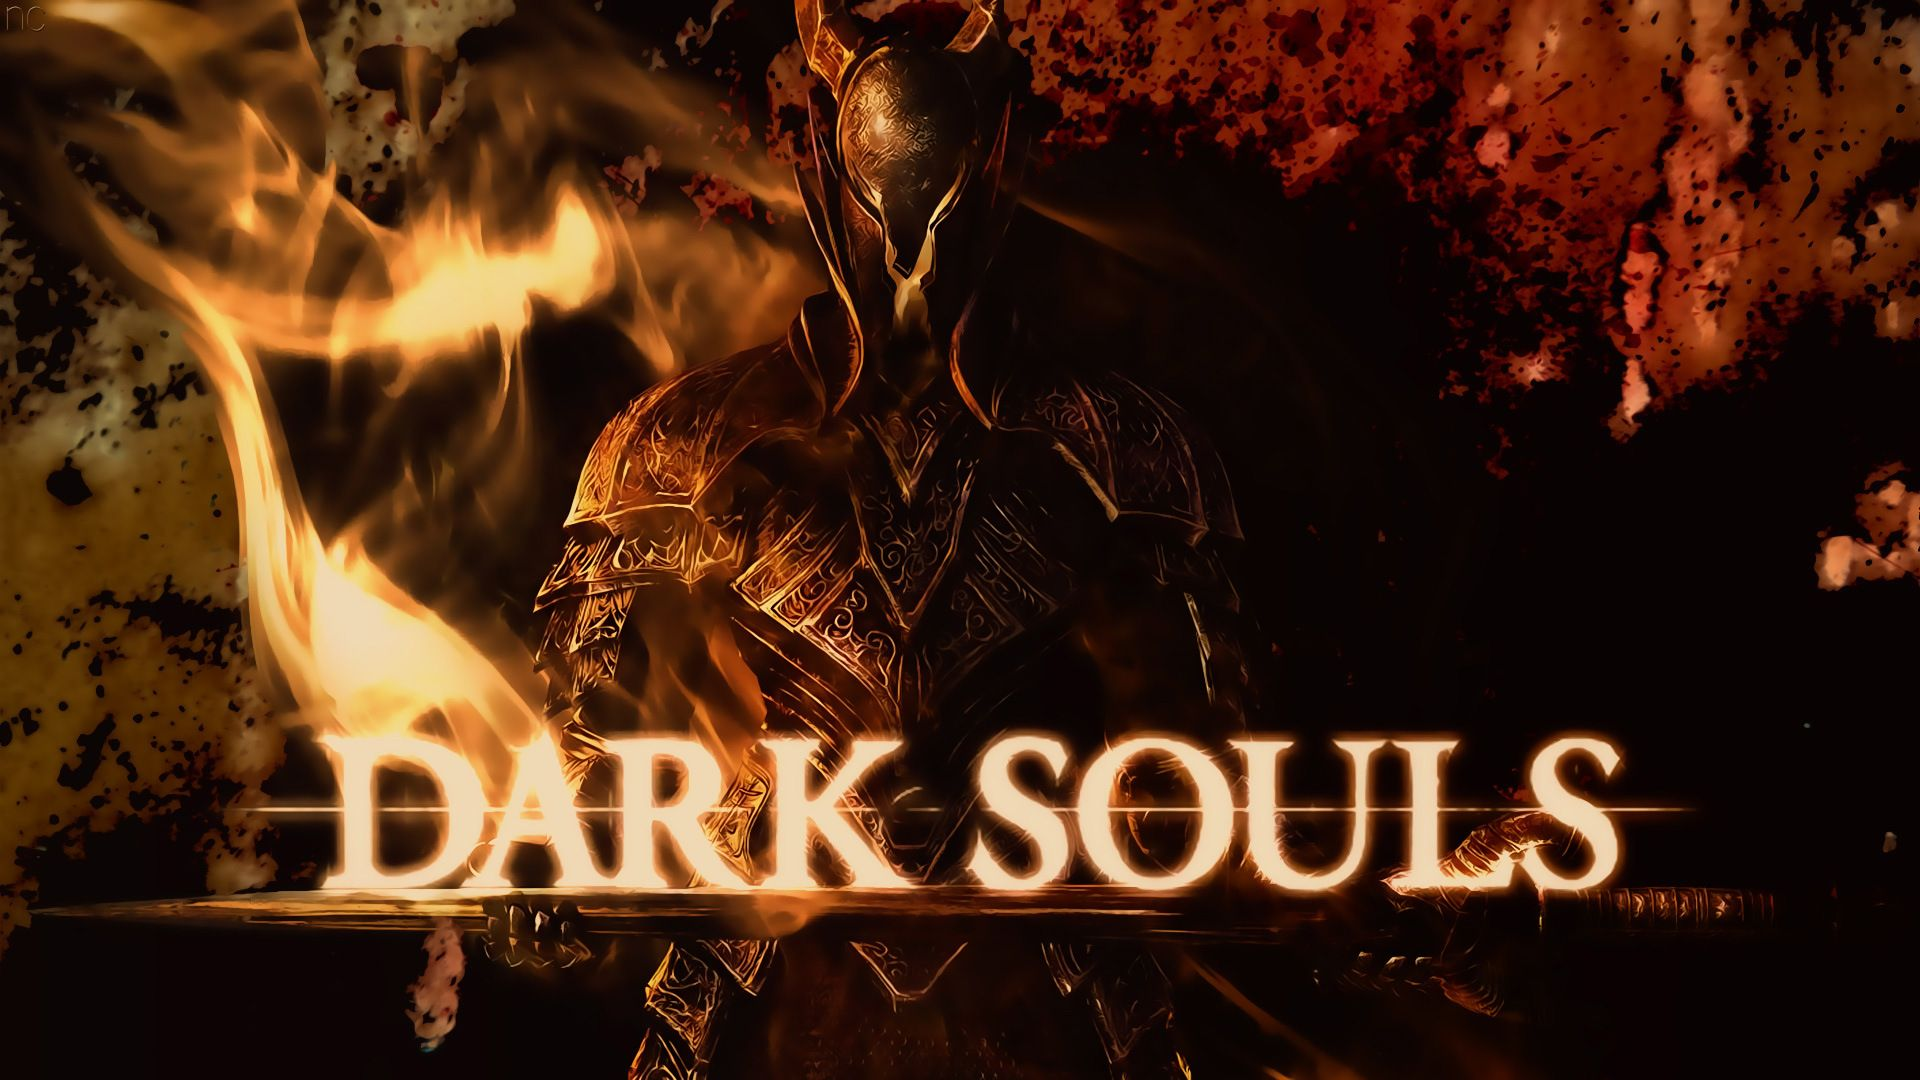 Dark Souls Highly Compressed Pc Game Download Dark Souls Wallpaper Dark Souls Dark Souls Armor